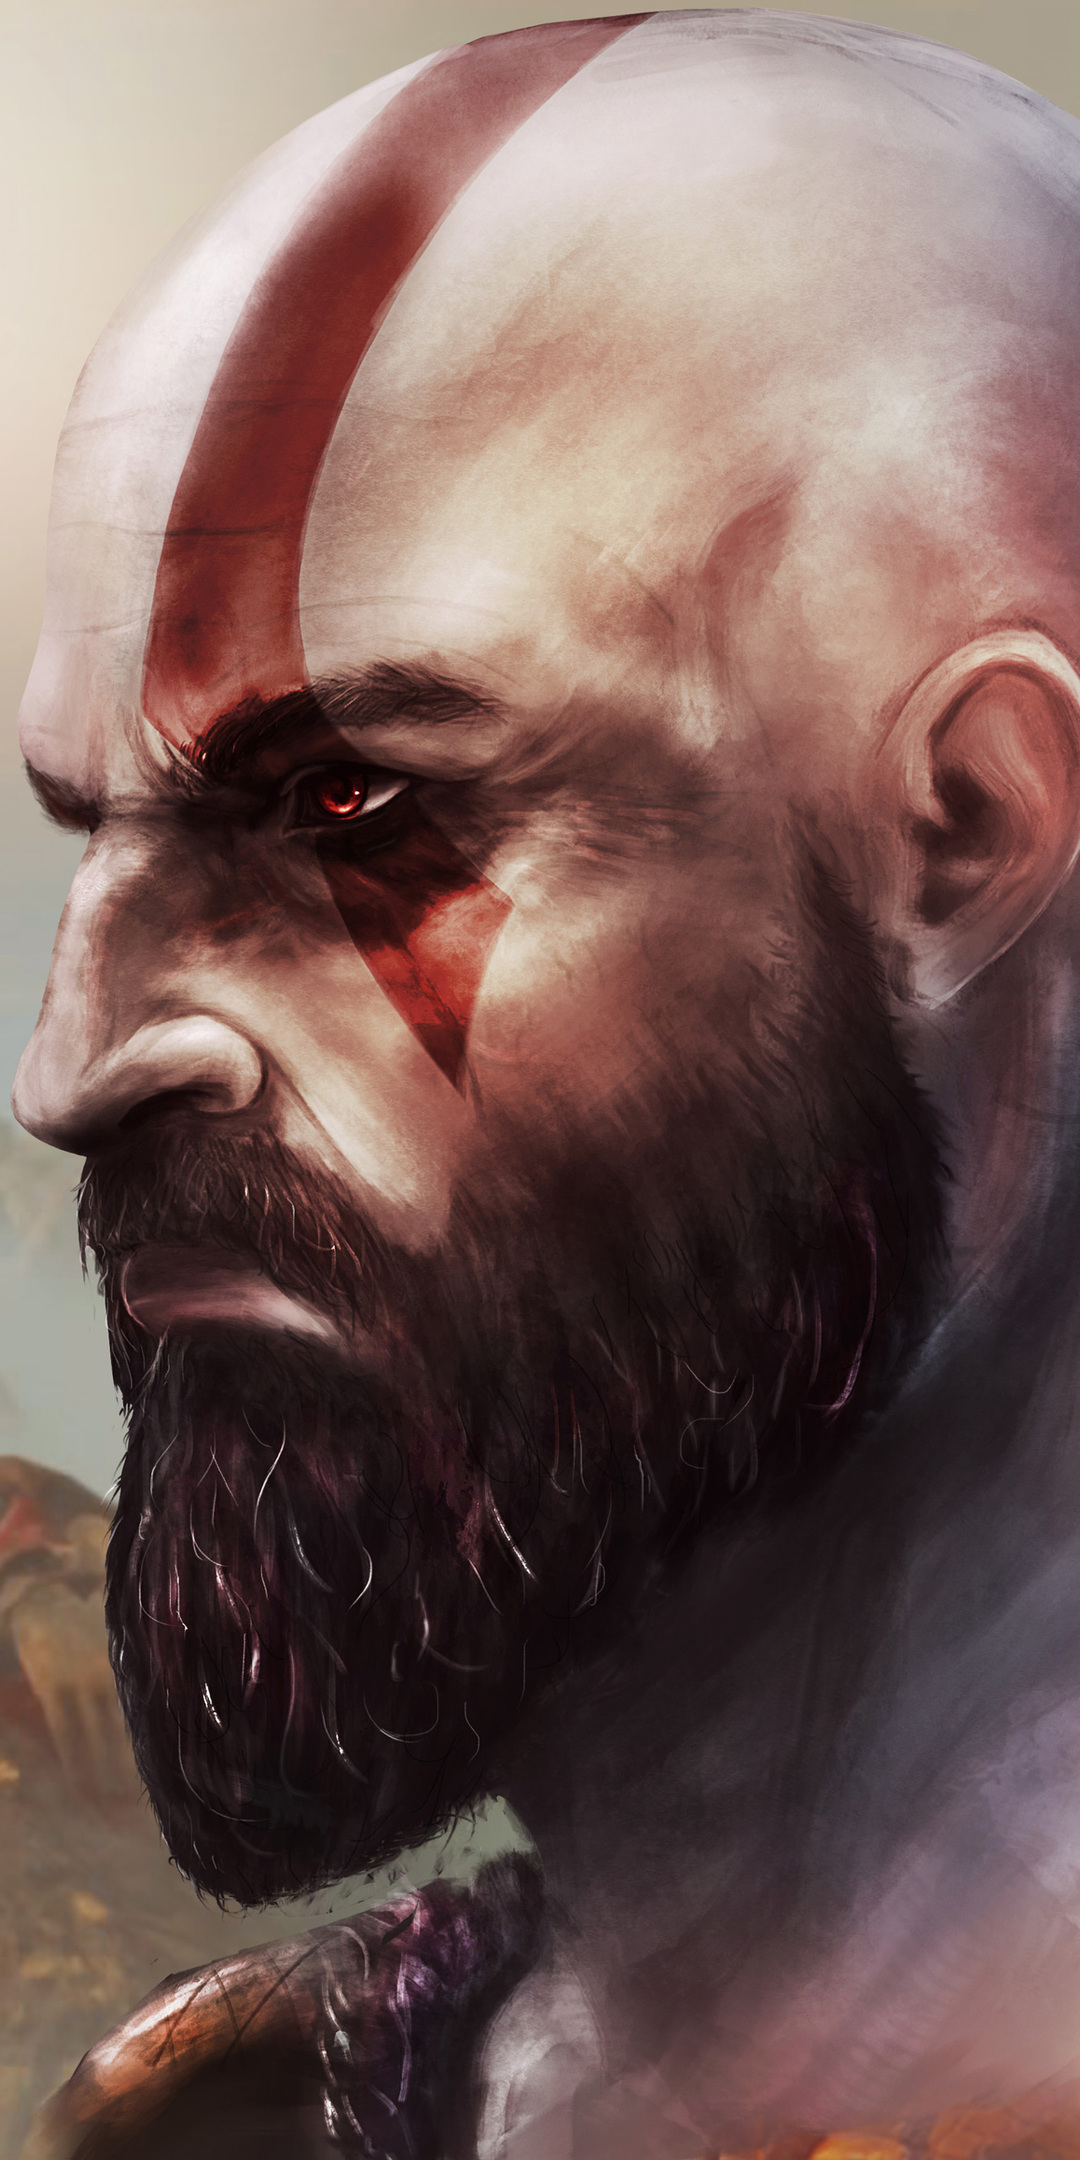 kratos-in-god-of-war-art-4e.jpg